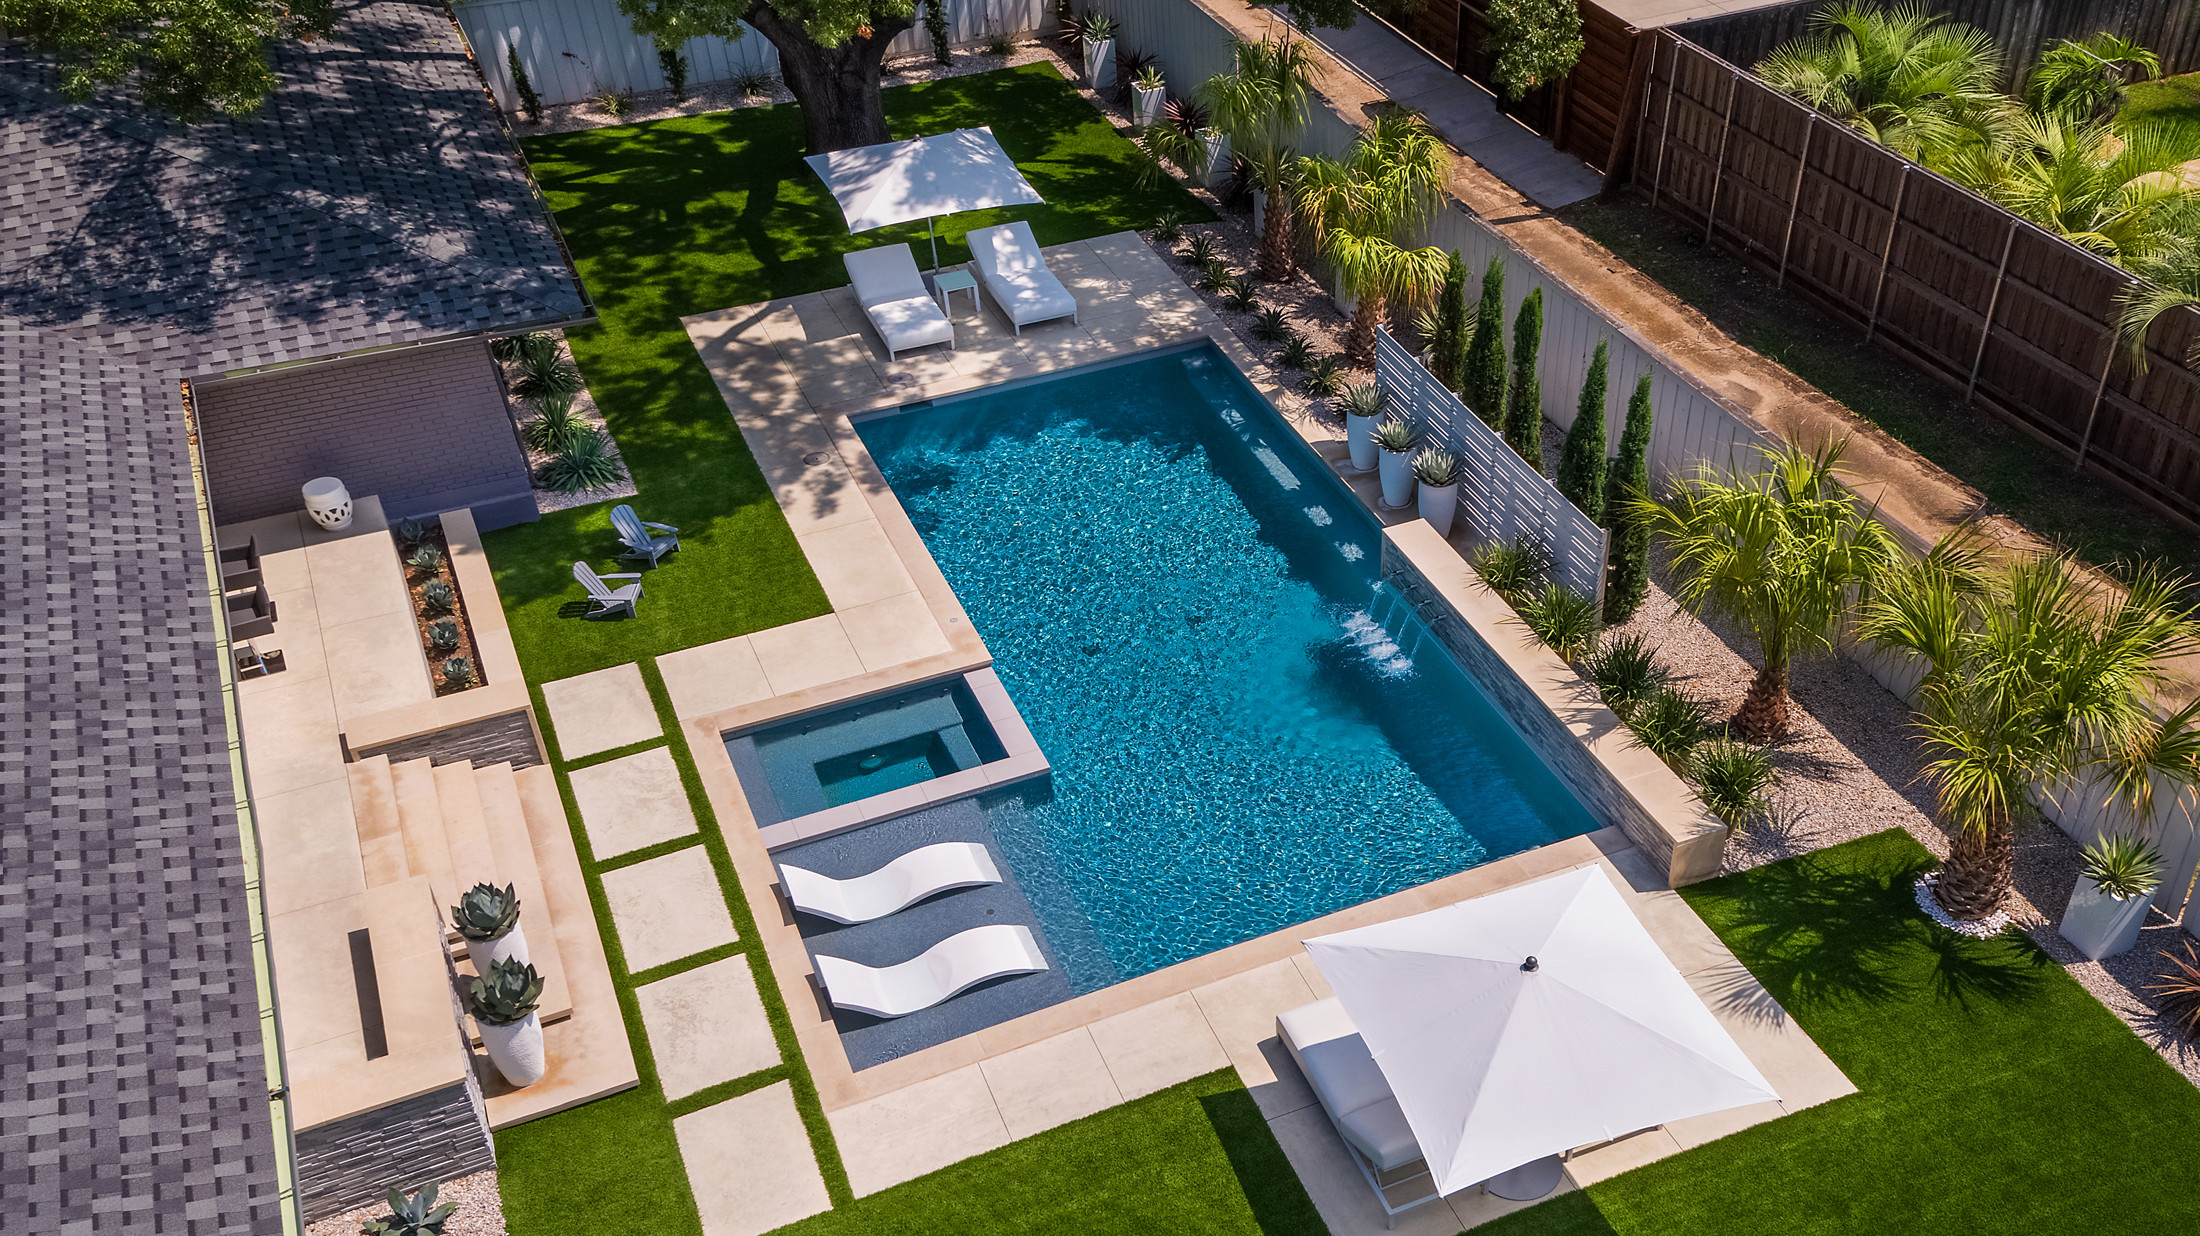 75 Beautiful Modern Pool Pictures Ideas November 2020 Houzz